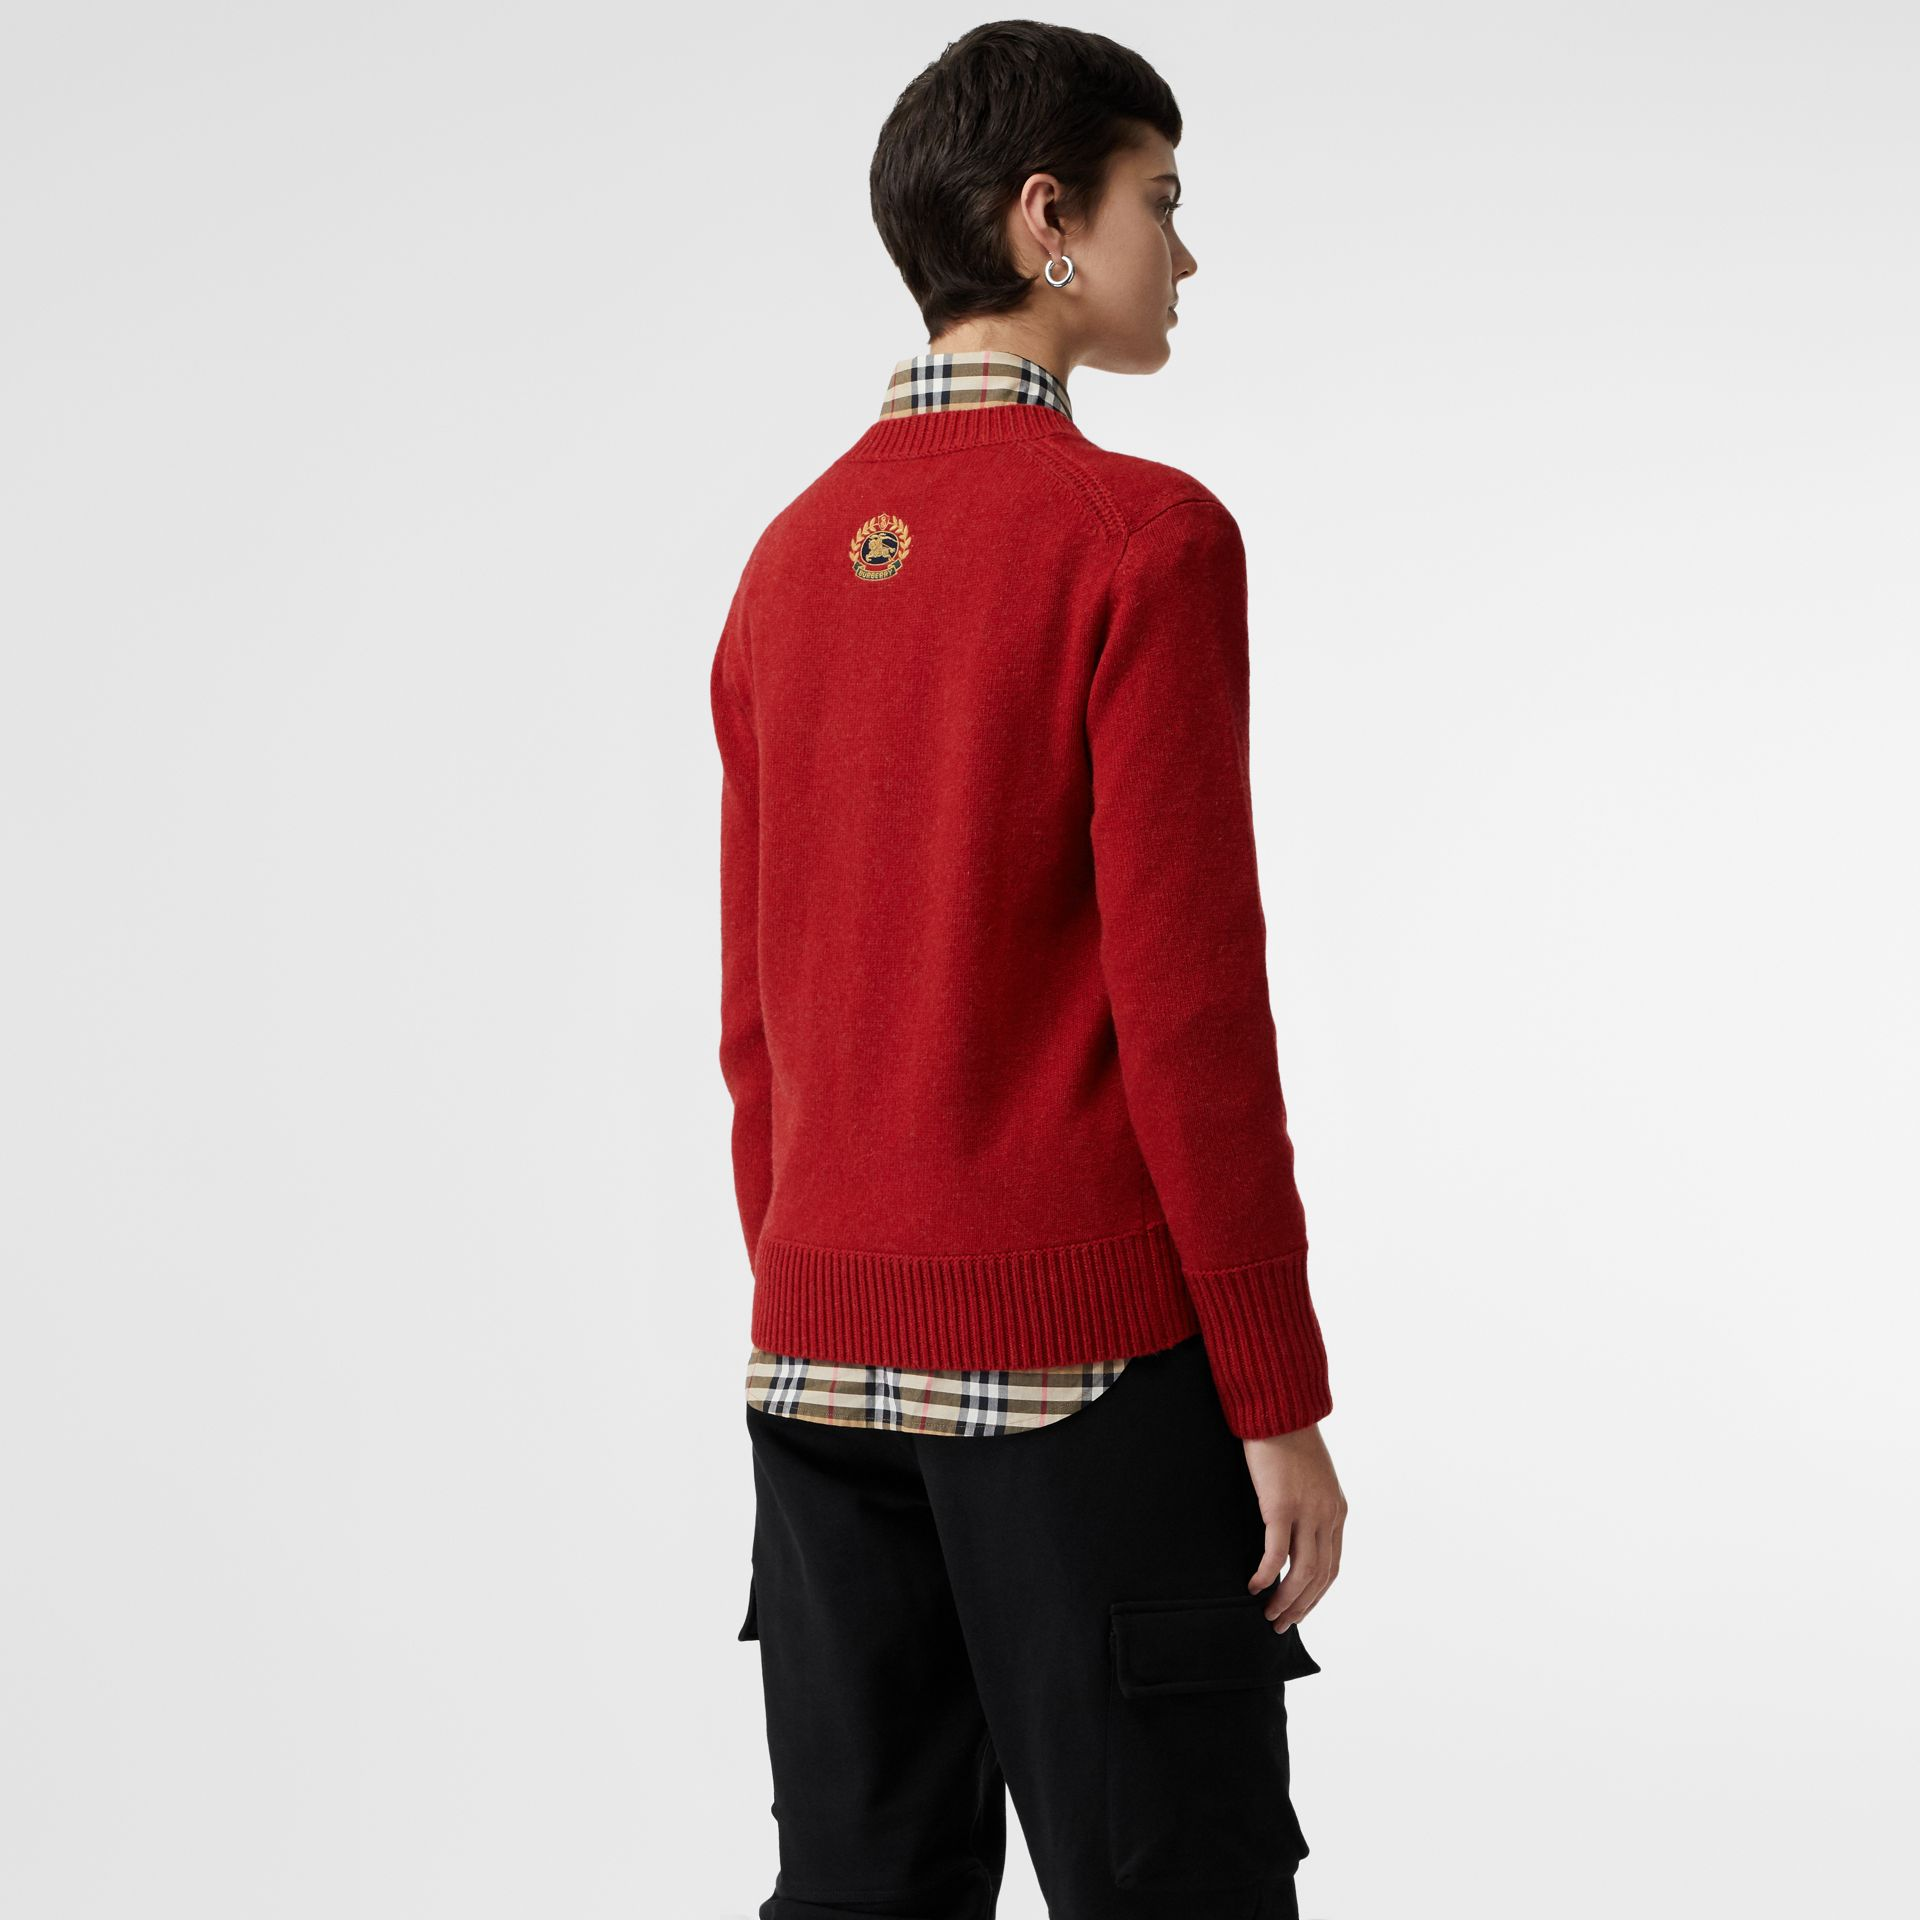 Embroidered Crest Cashmere Sweater in Coral Red - Women | Burberry - gallery image 2